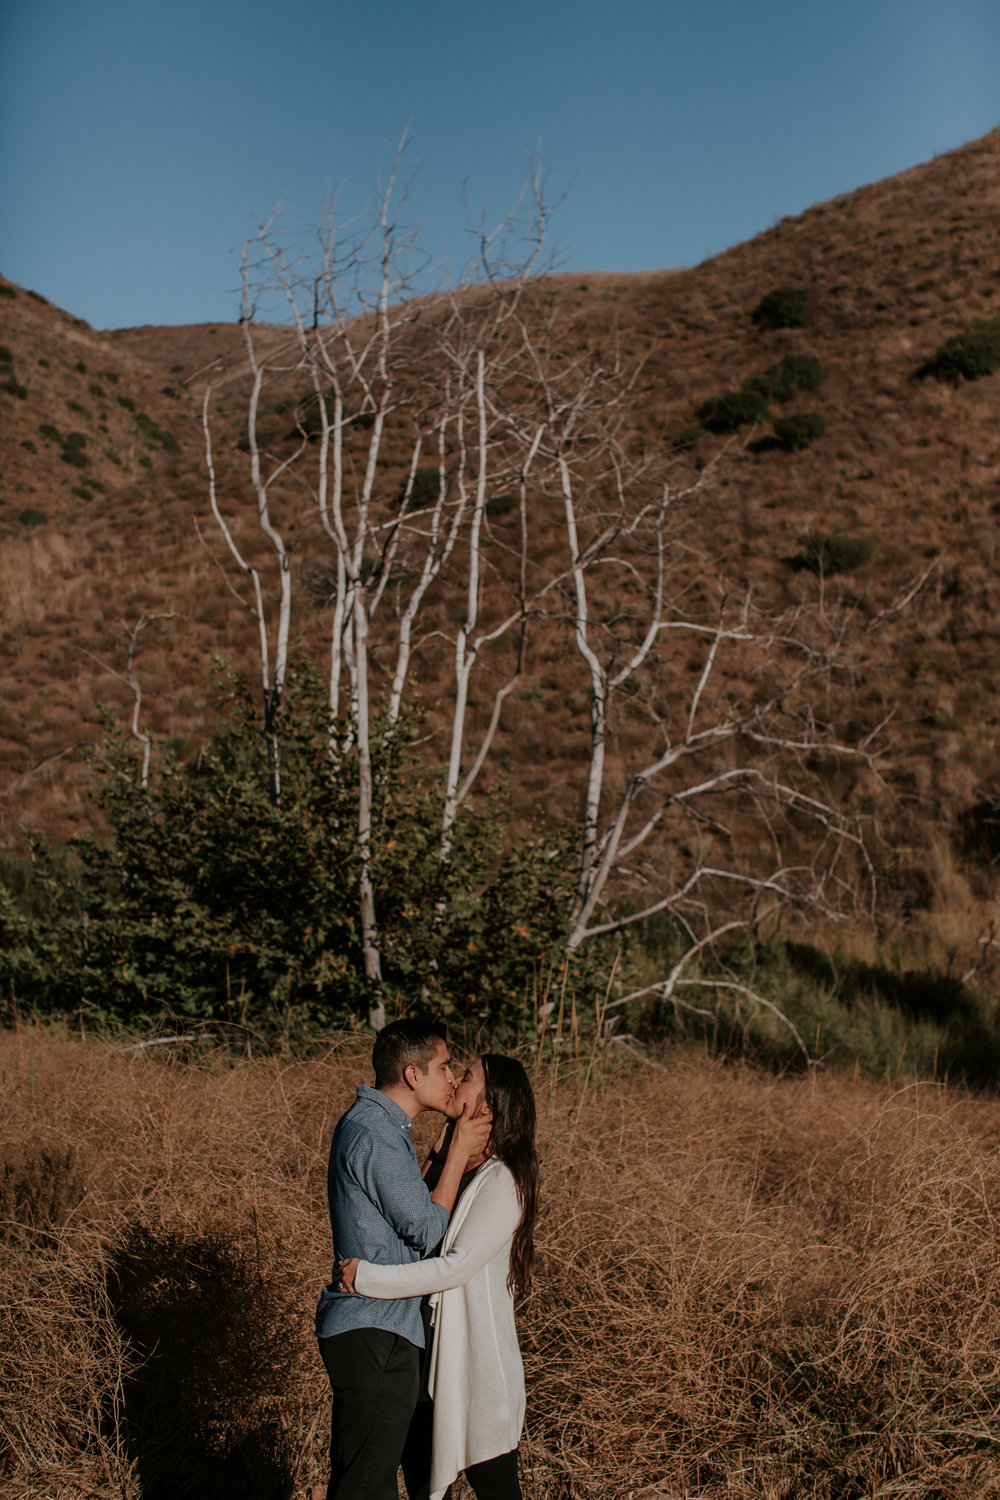 Jennifer and Andrew Engagement Point Mugu state park Malibu Ventura -52.jpg